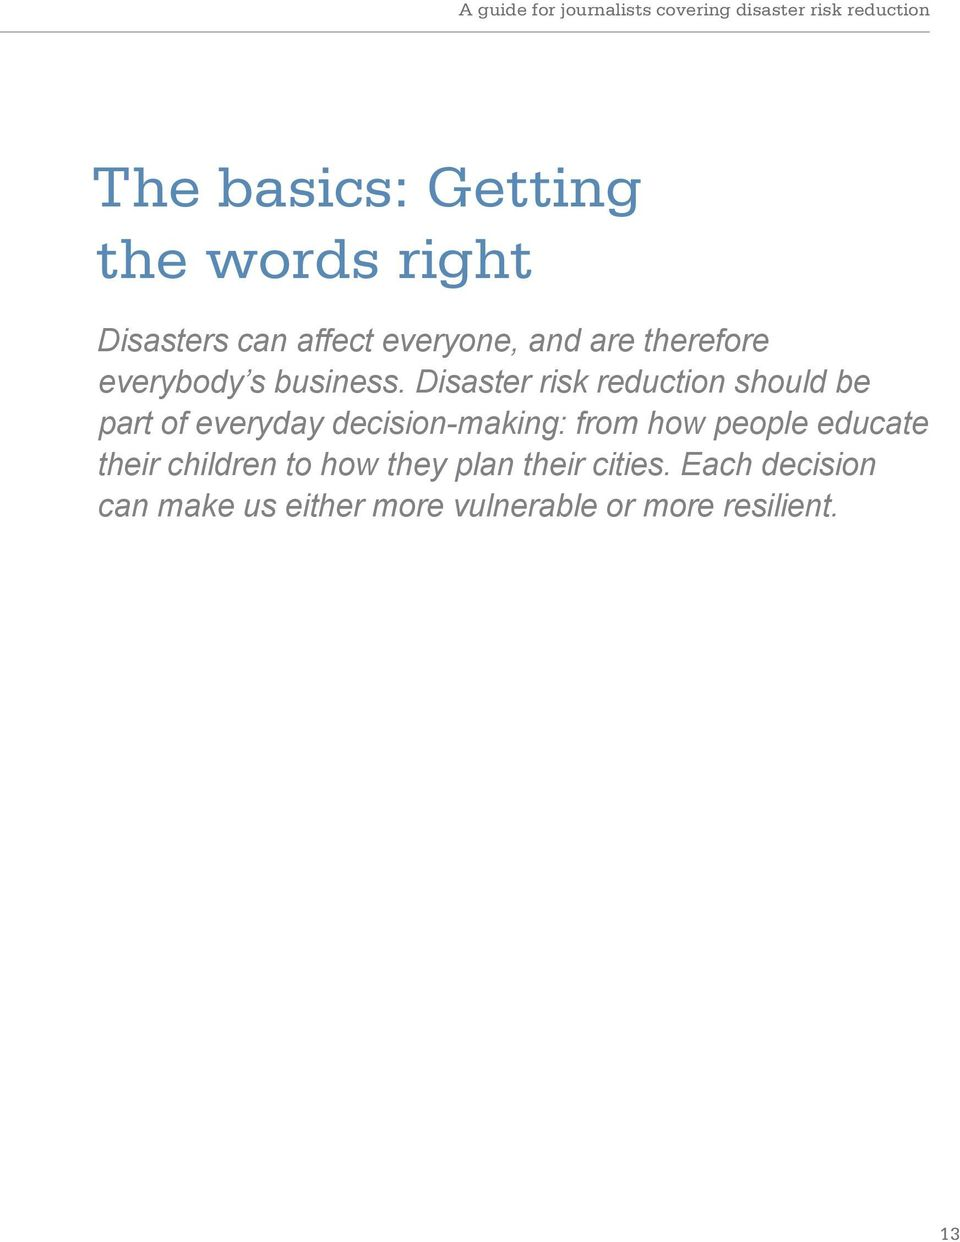 Disaster risk reduction should be part of everyday decision-making: from how people educate